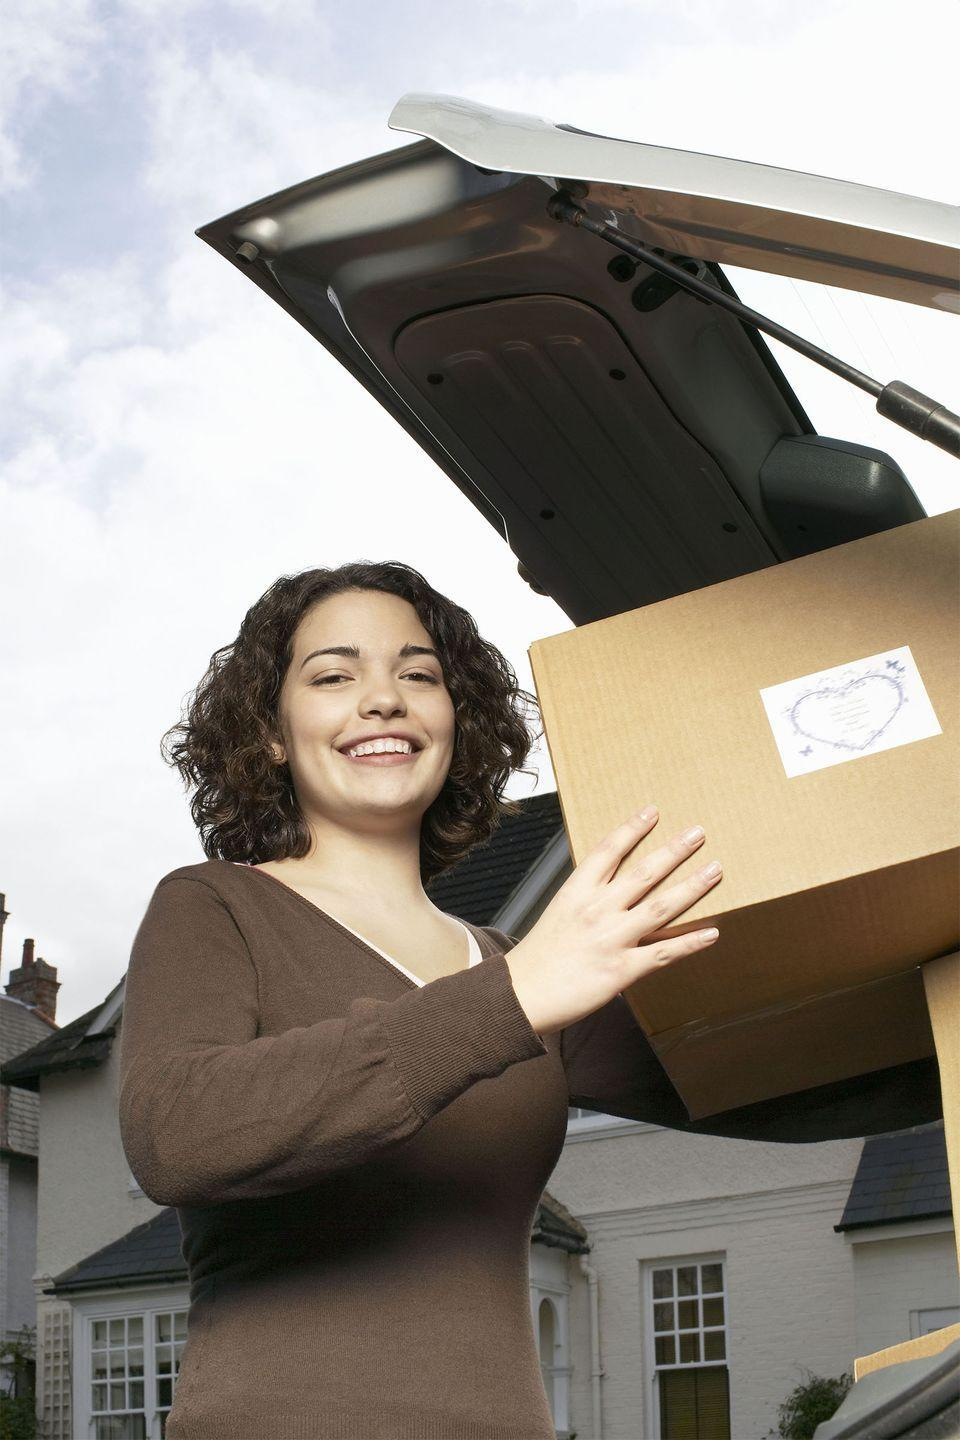 """<p>Keep that box of stuff you're donating to charity in your trunk, not your closet. When it's full, drop it off.</p><p><strong><a class=""""link rapid-noclick-resp"""" href=""""https://www.amazon.com/Bankers-Box-SmoothMove-Tape-Free-7714210/dp/B00QSON748/?tag=syn-yahoo-20&ascsubtag=%5Bartid%7C10070.g.3310%5Bsrc%7Cyahoo-us"""" rel=""""nofollow noopener"""" target=""""_blank"""" data-ylk=""""slk:SHOP MOVING BOXES"""">SHOP MOVING BOXES</a></strong></p>"""